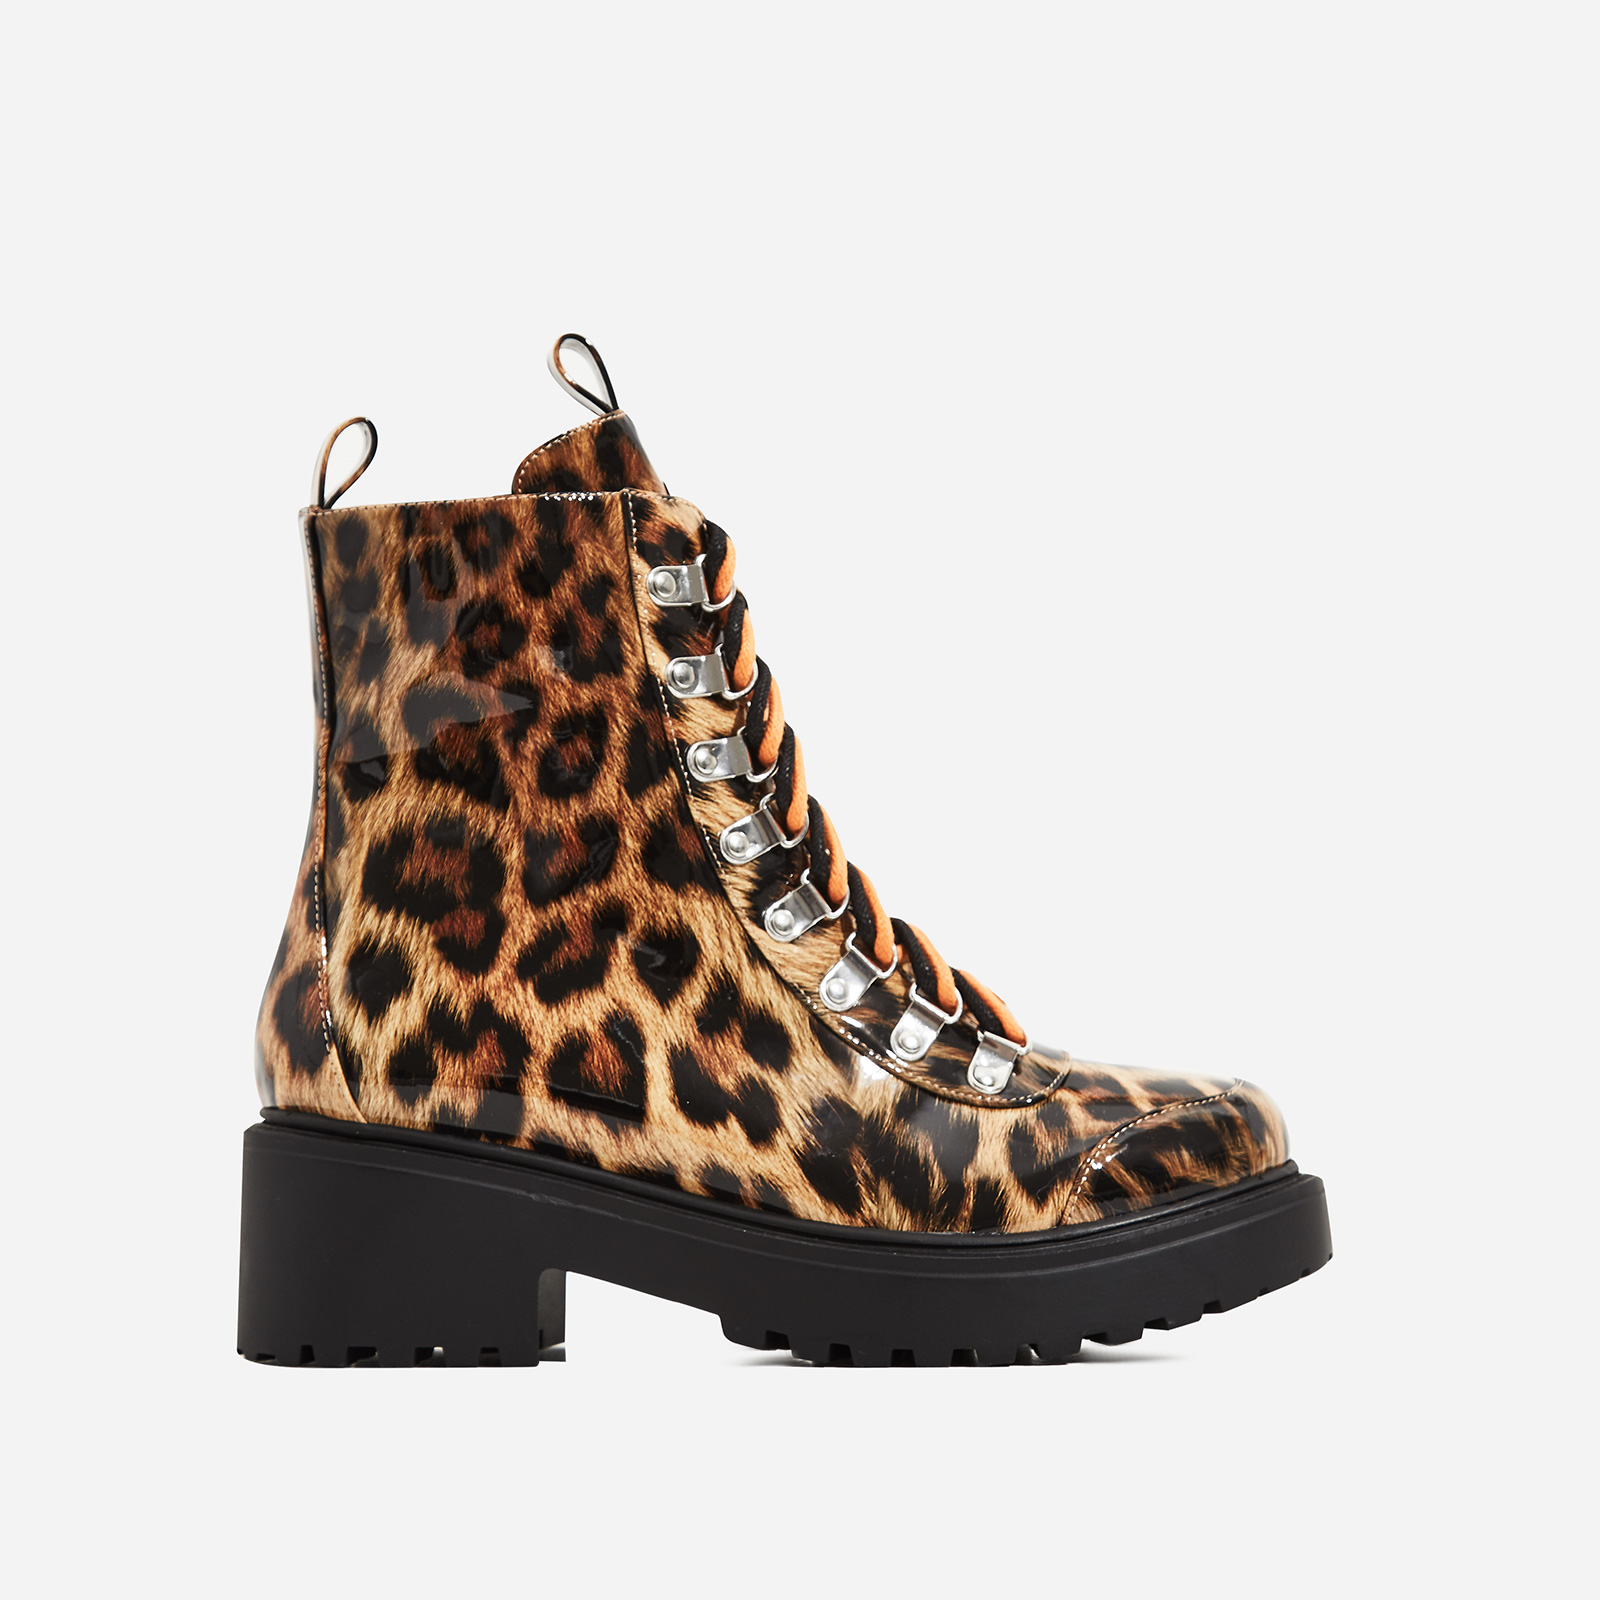 Kris Chunky Sole Lace Up Ankle Biker Boot In Tan Leopard Print Patent